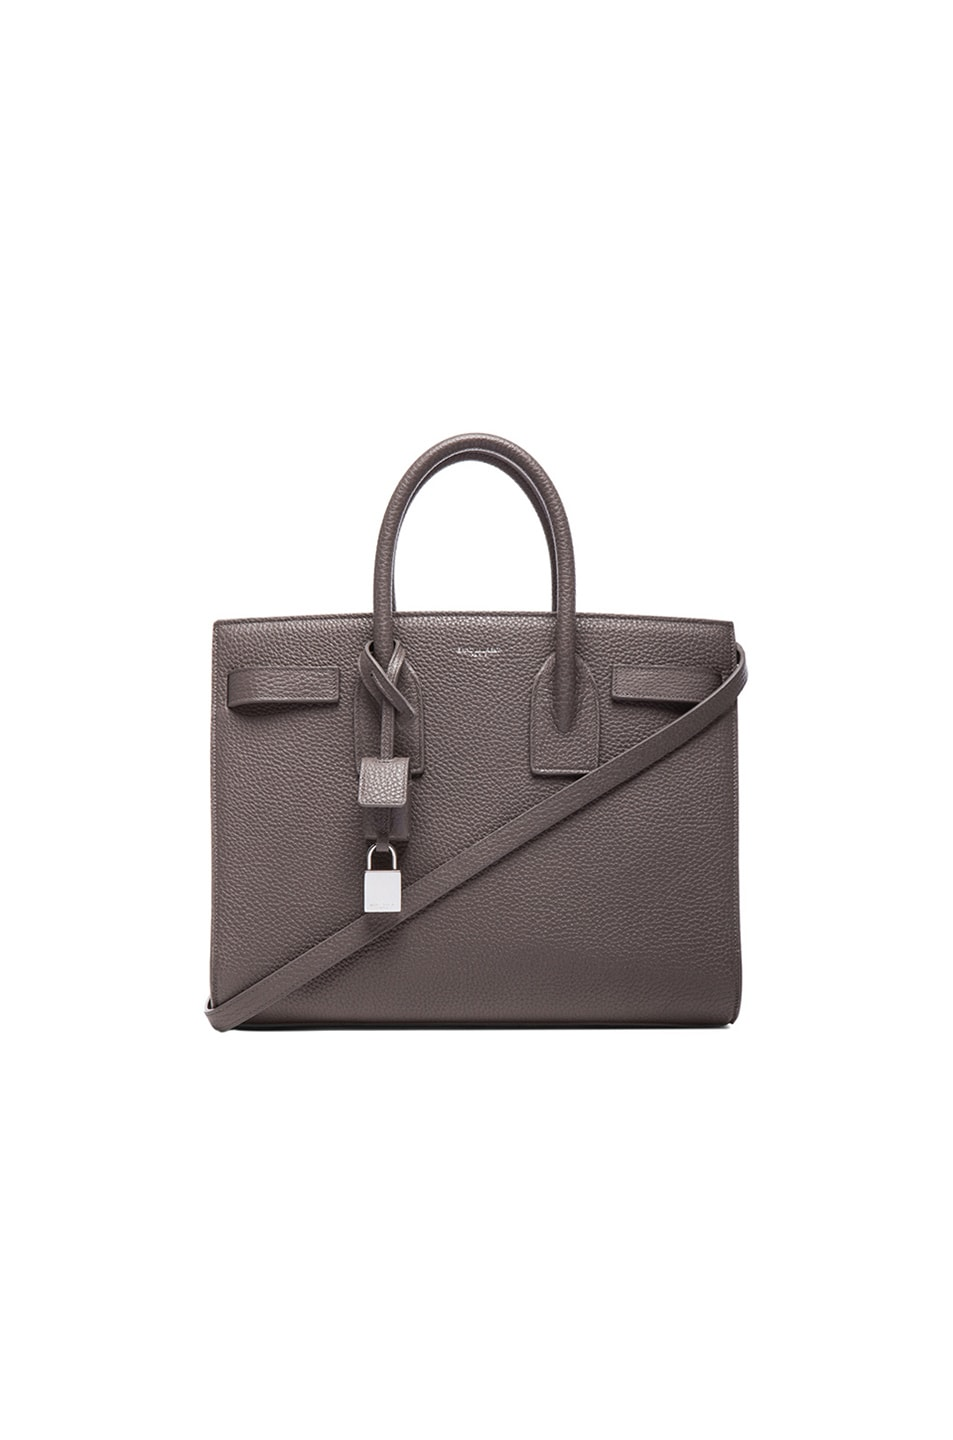 Image 1 of Saint Laurent Small Sac De Jour Carryall Bag in Fog